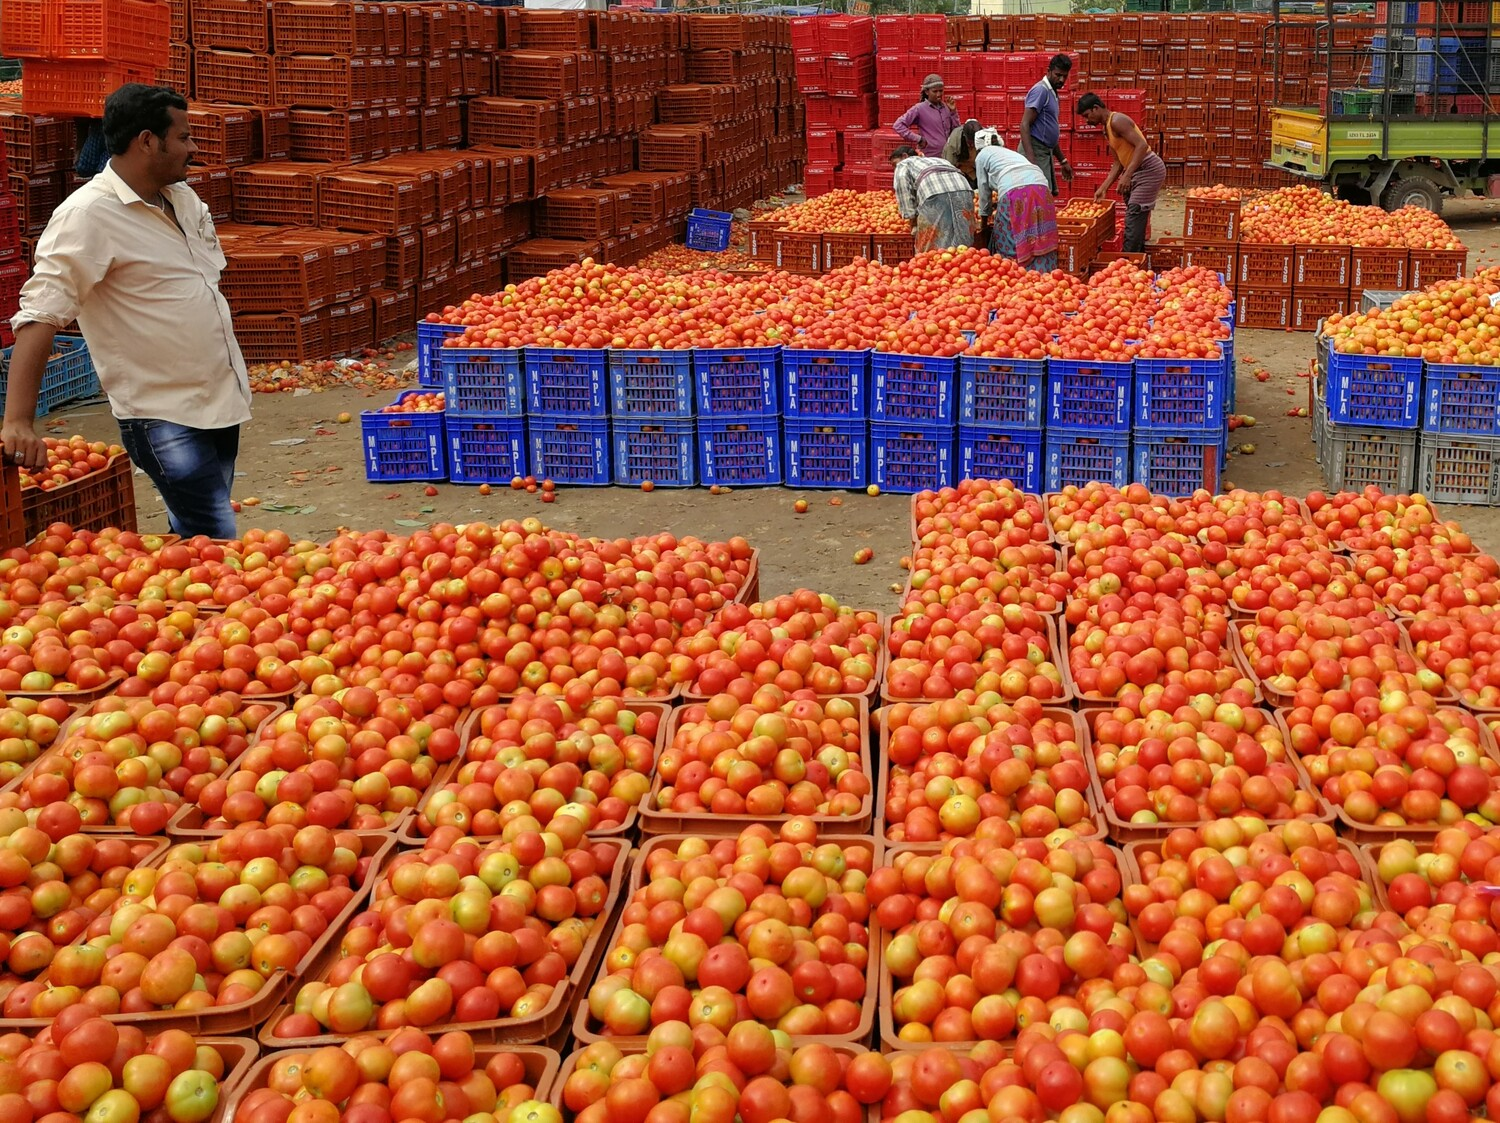 Workers packing tomatoes at the market of Madanapalle in India, from where they will be delivered across the country.